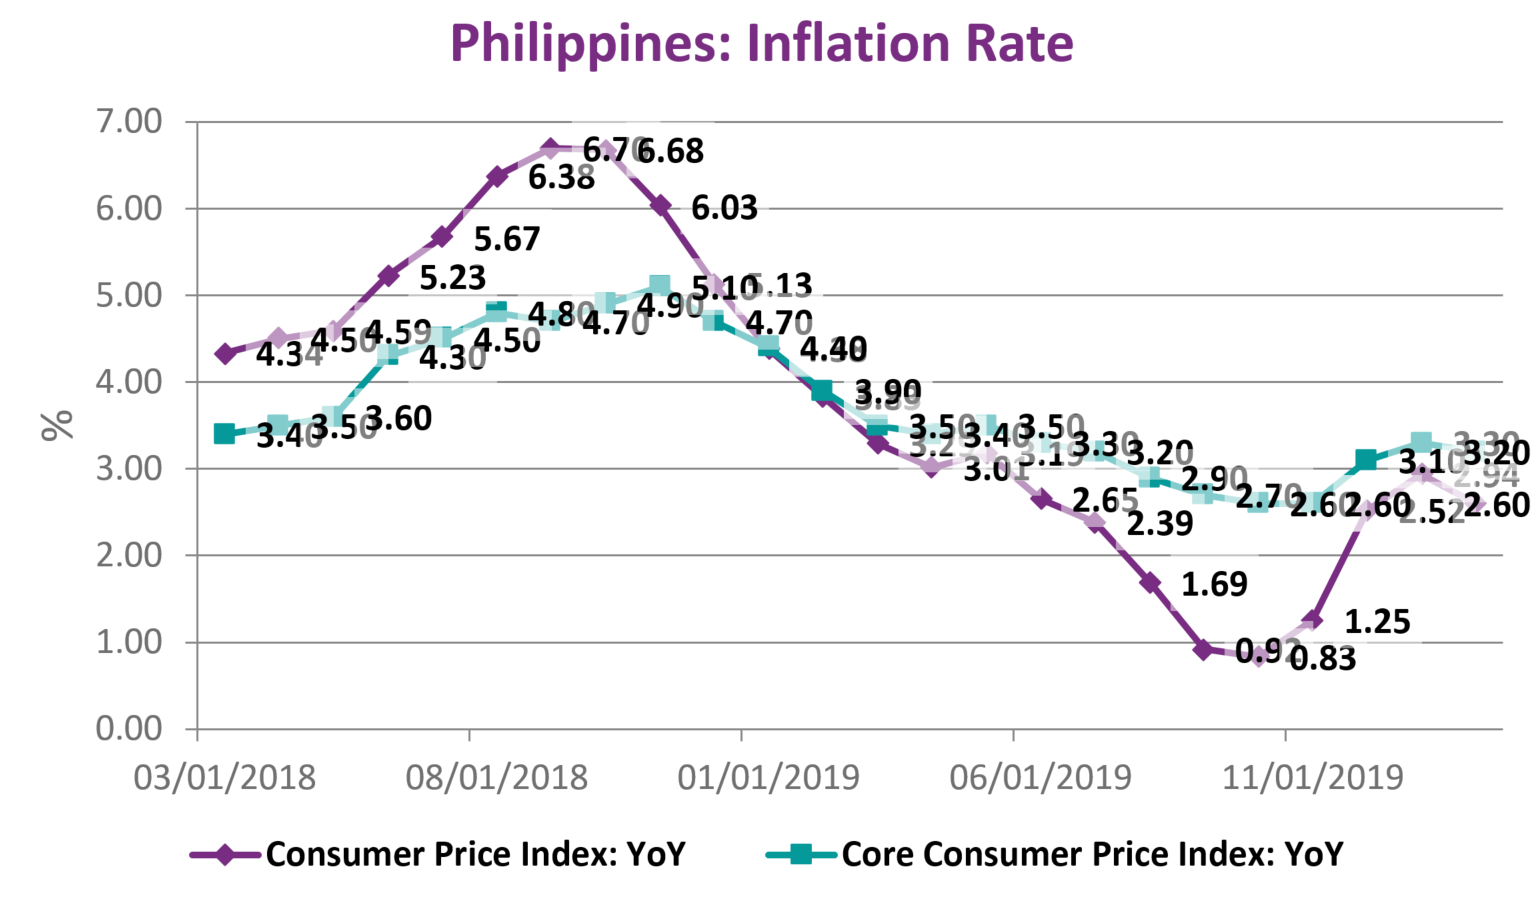 Headline Consumer Inflation in the Philippines slowed down in February 2020 for the first time in four months